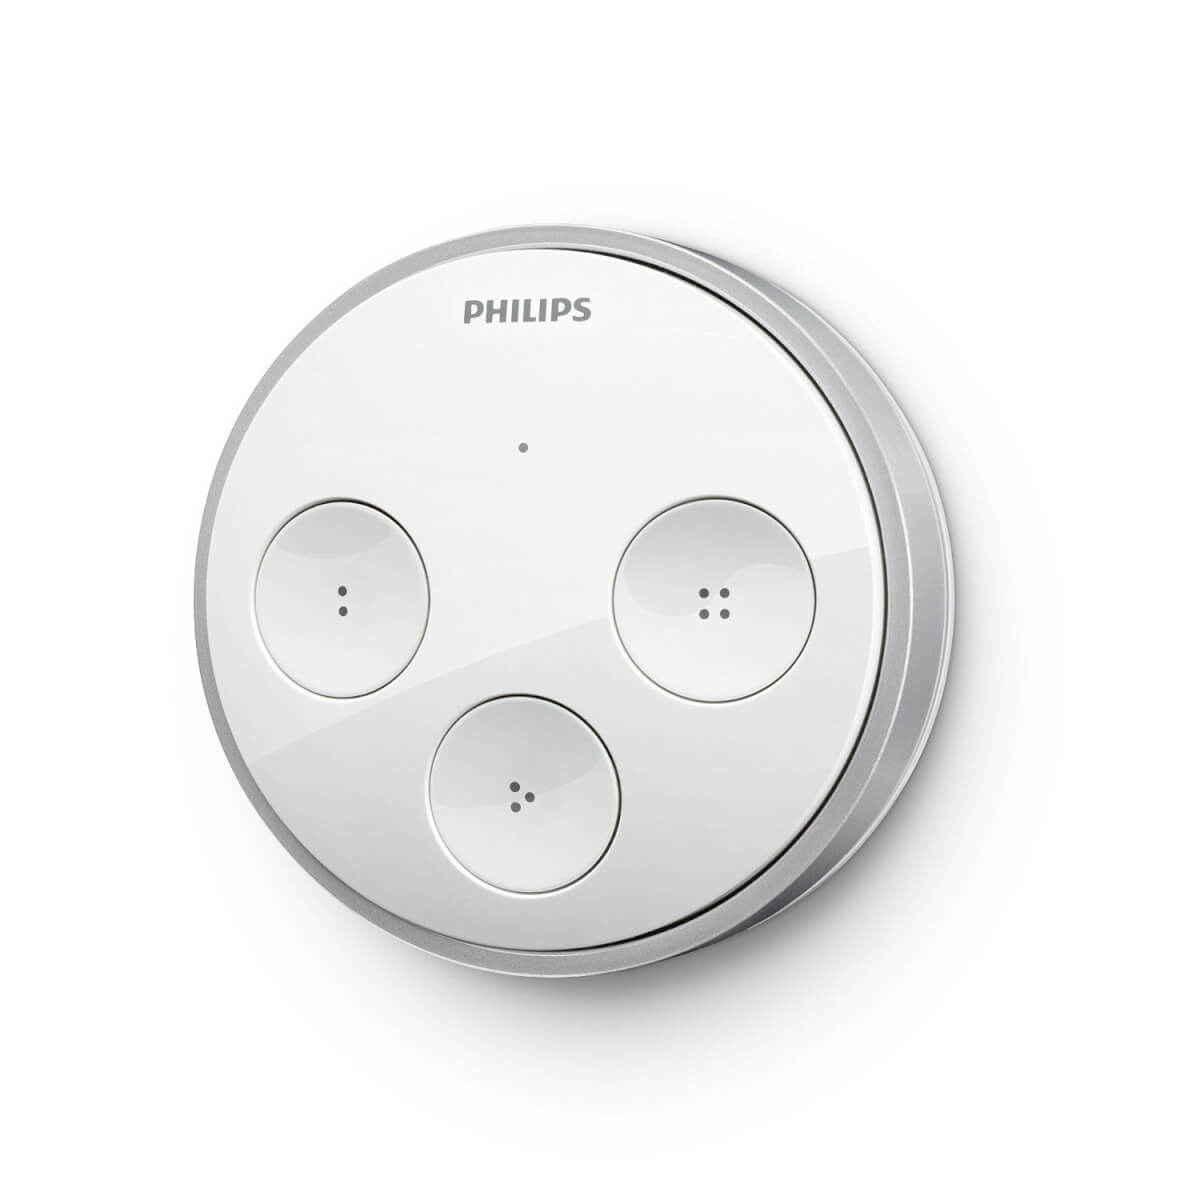 hue light switch